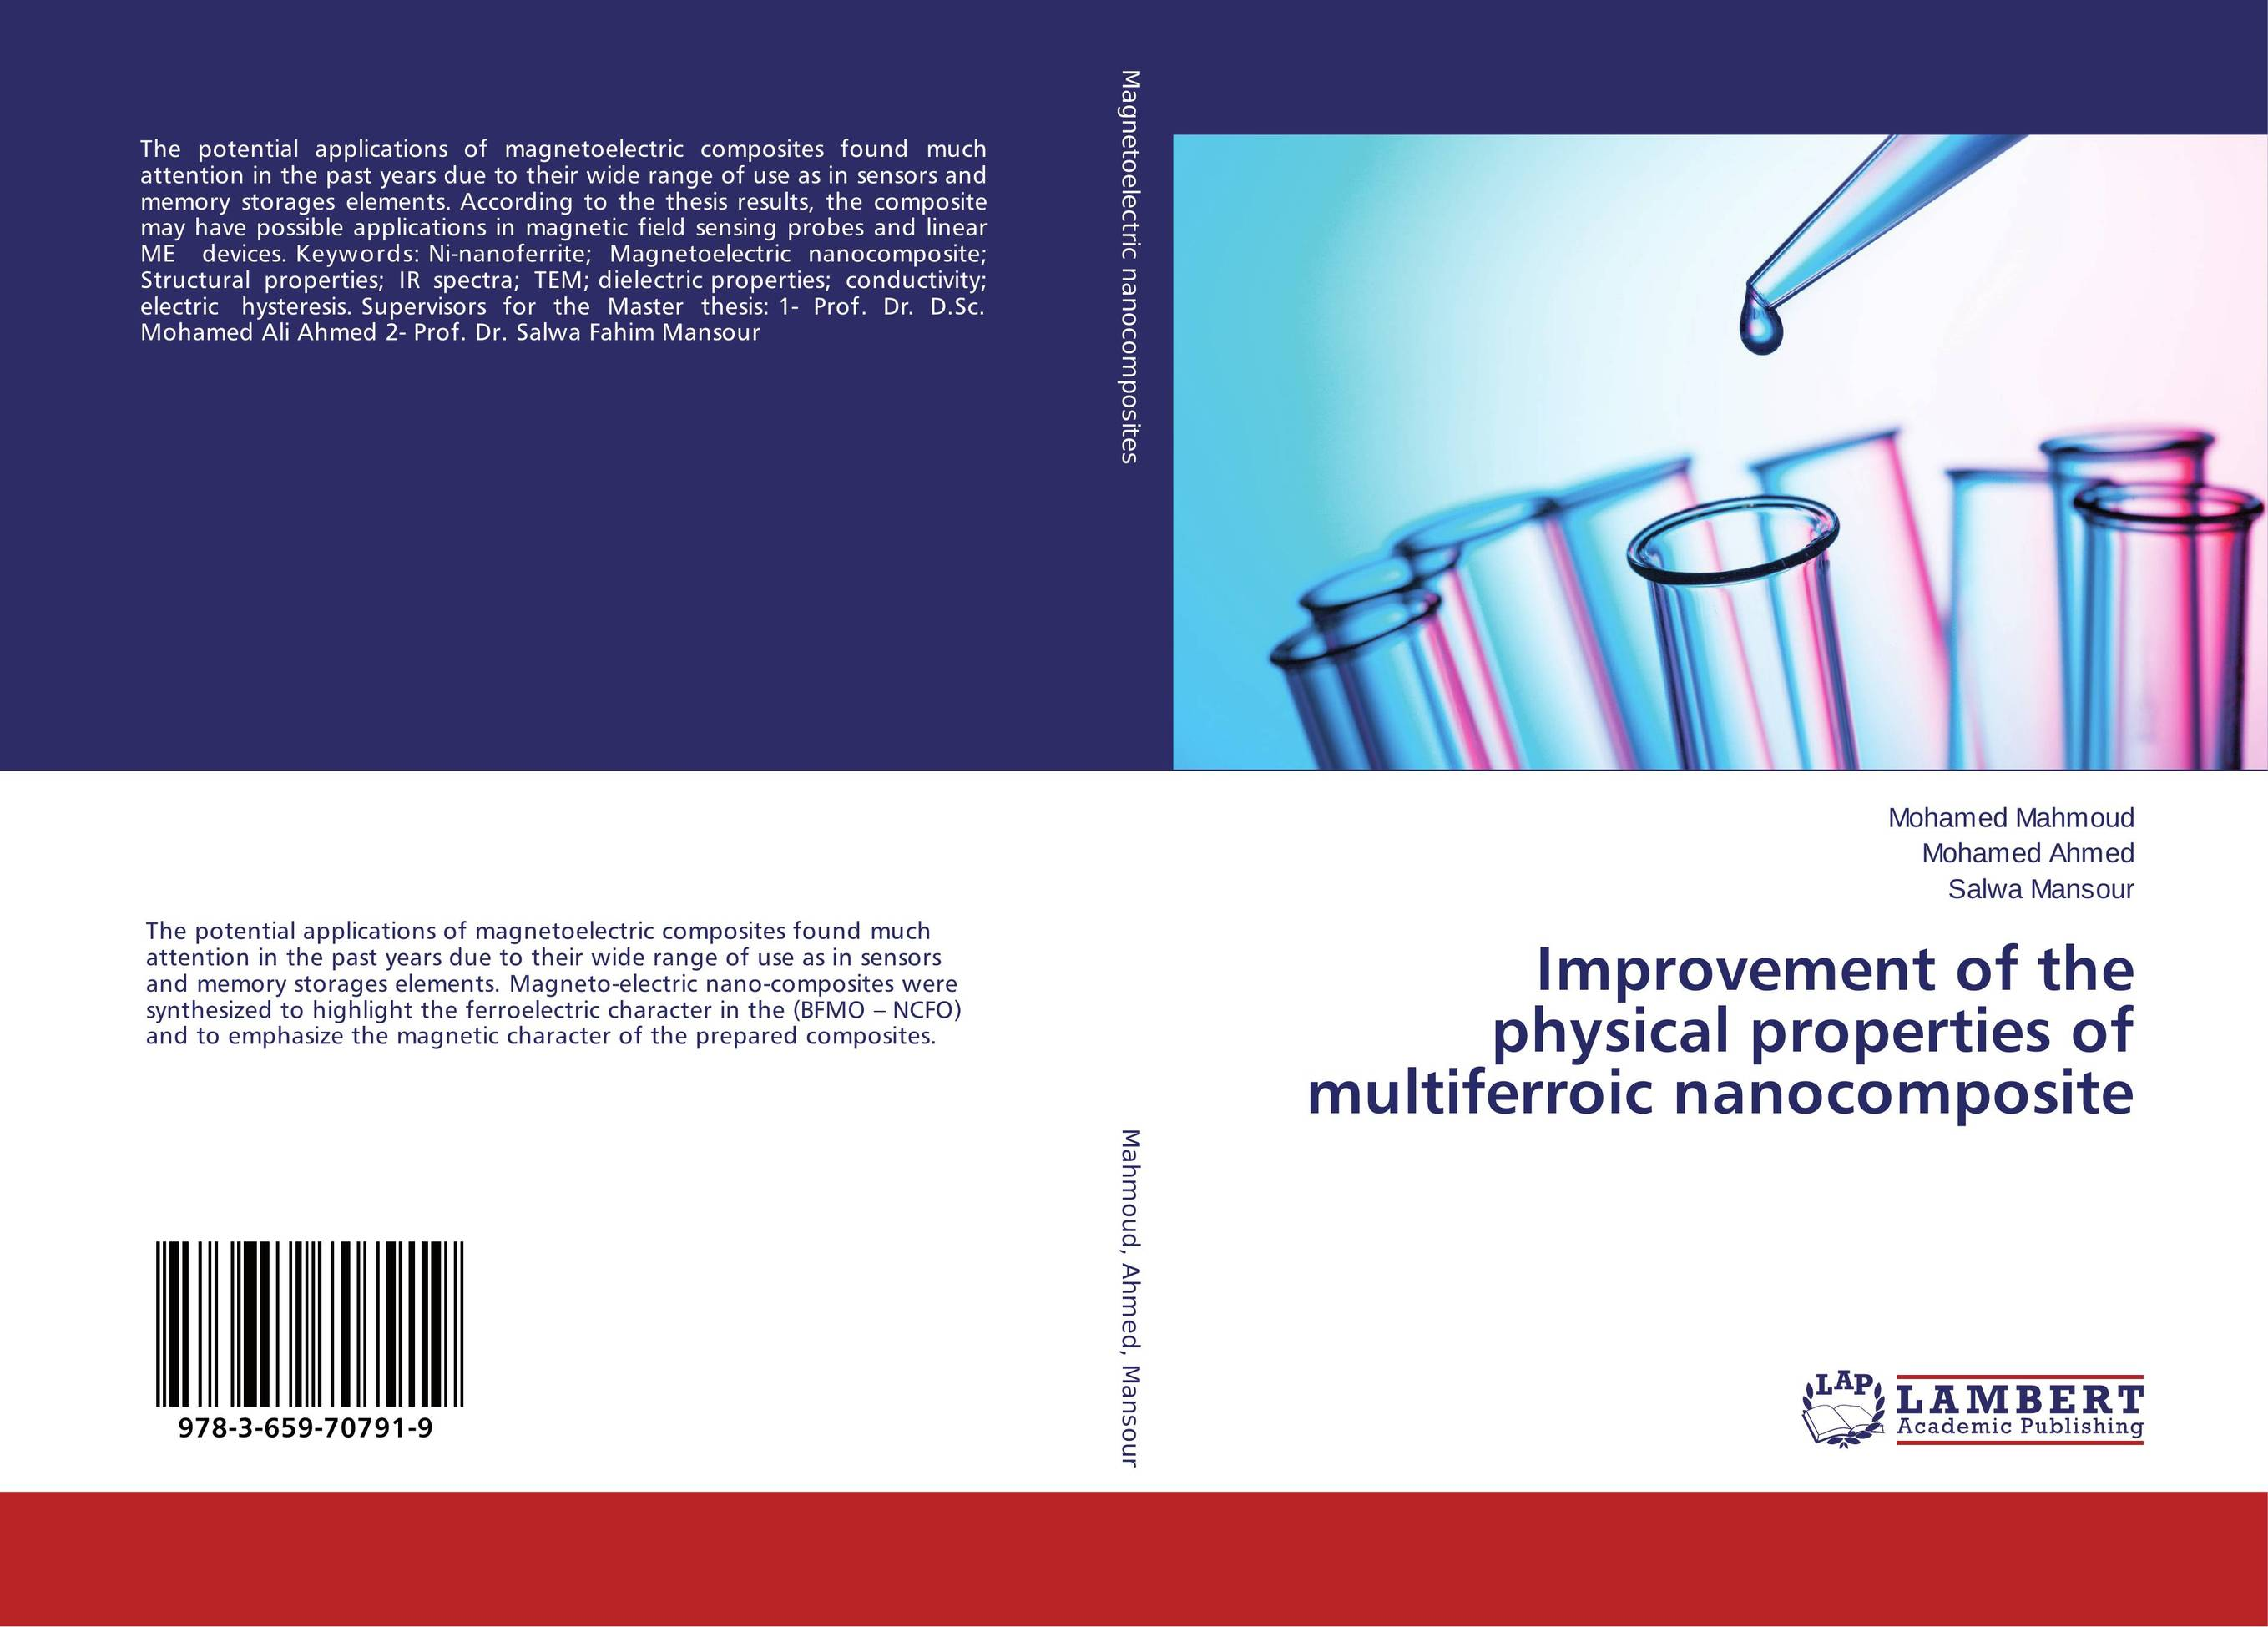 Improvement of the physical properties of multiferroic nanocomposite tarek ahmed working guide to reservoir rock properties and fluid flow